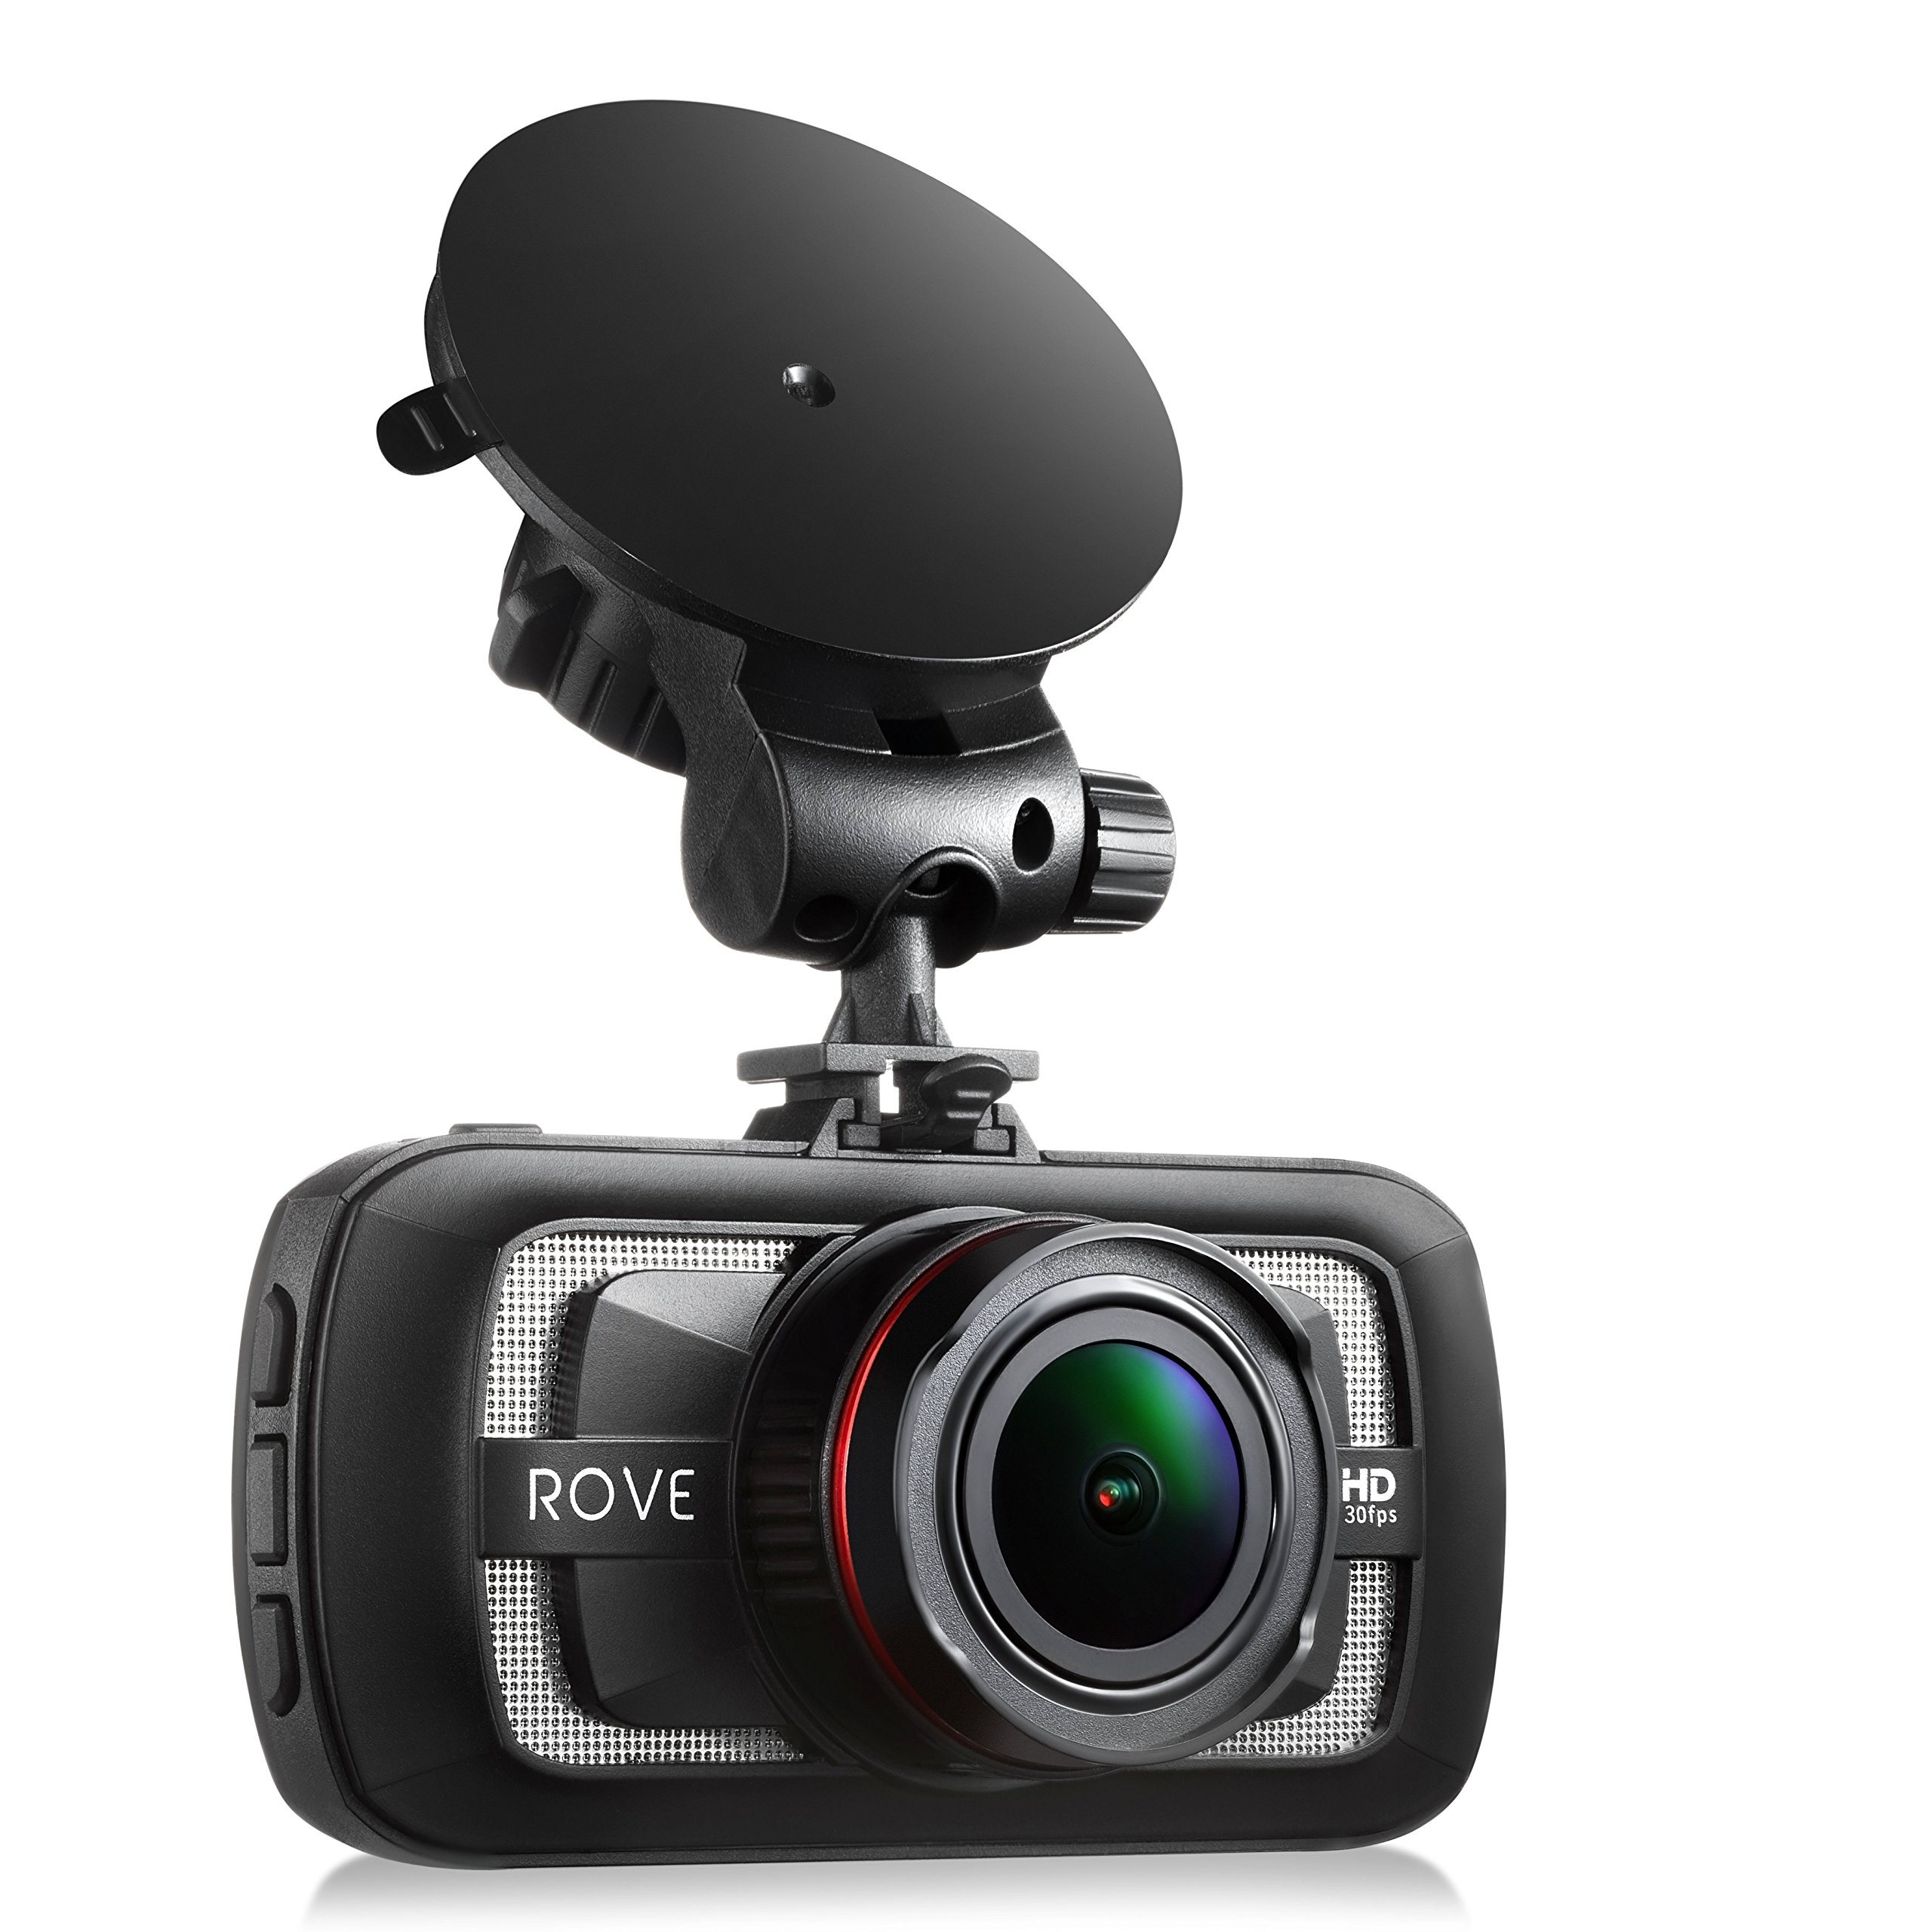 Rove A12-60 - 2.7K Quad HD 1440P at 30fps- Car Dash Cam HDR Superior Nigh Vision Ambarella A12-A55 American Made Chipset 170° Wide Angle Dashboard Camera Car DVR Video Recorder W/ 3.0'' LCD by ROVE